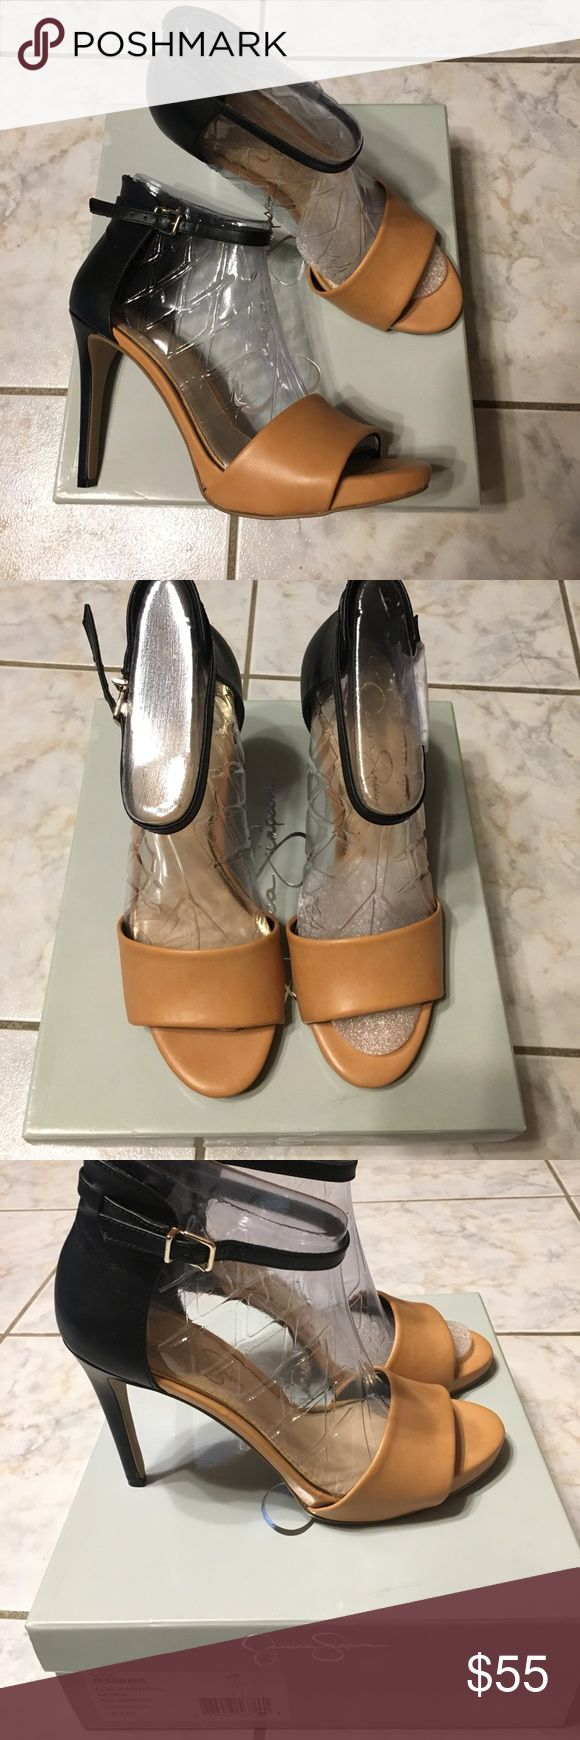 Jessica Simpson Sandals New! Jessica Simpson Shoes Sandals